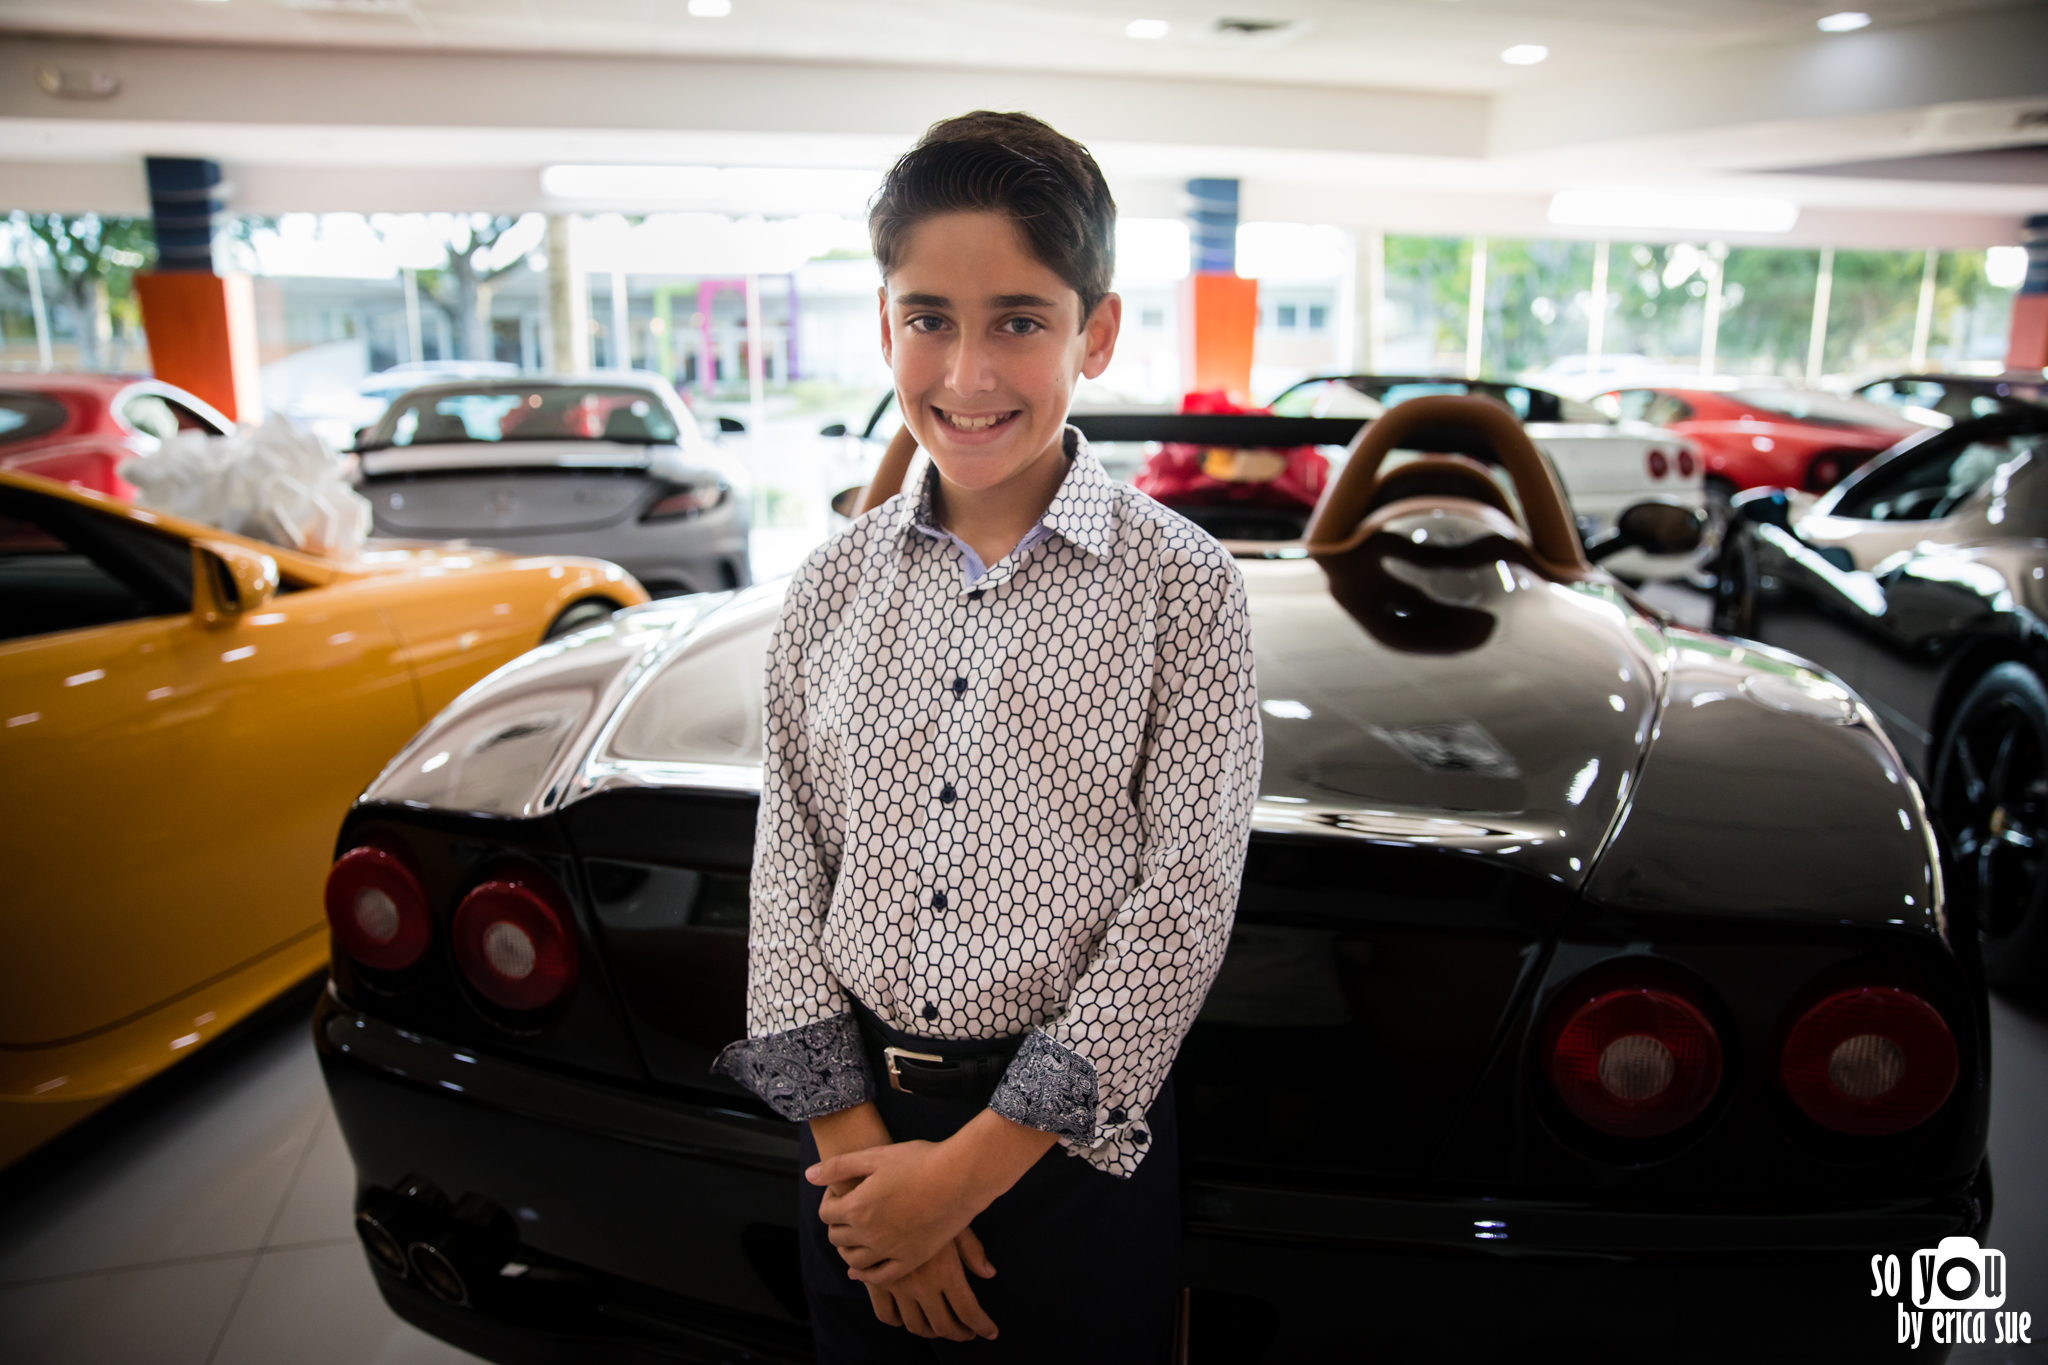 so-you-by-erica-sue-mitzvah-photographer-collection-luxury-car-ft-lauderdale-4991.jpg